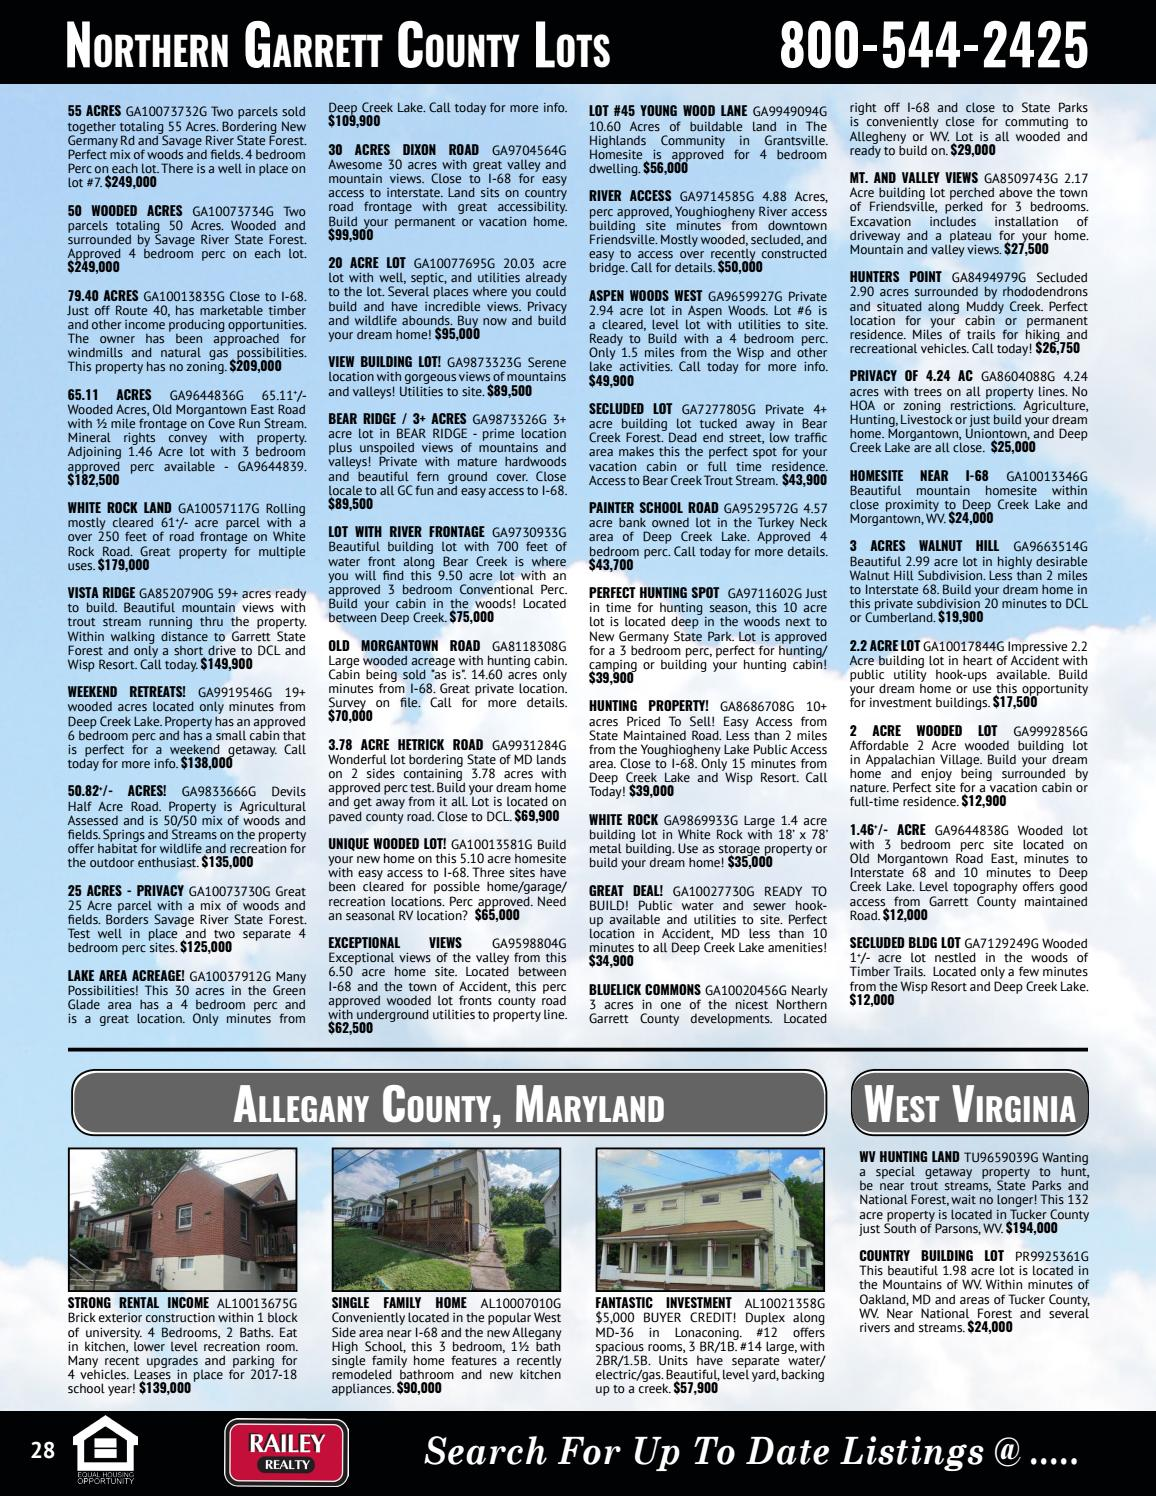 Railey Realty Winter & Spring 2018 Real Estate Guide